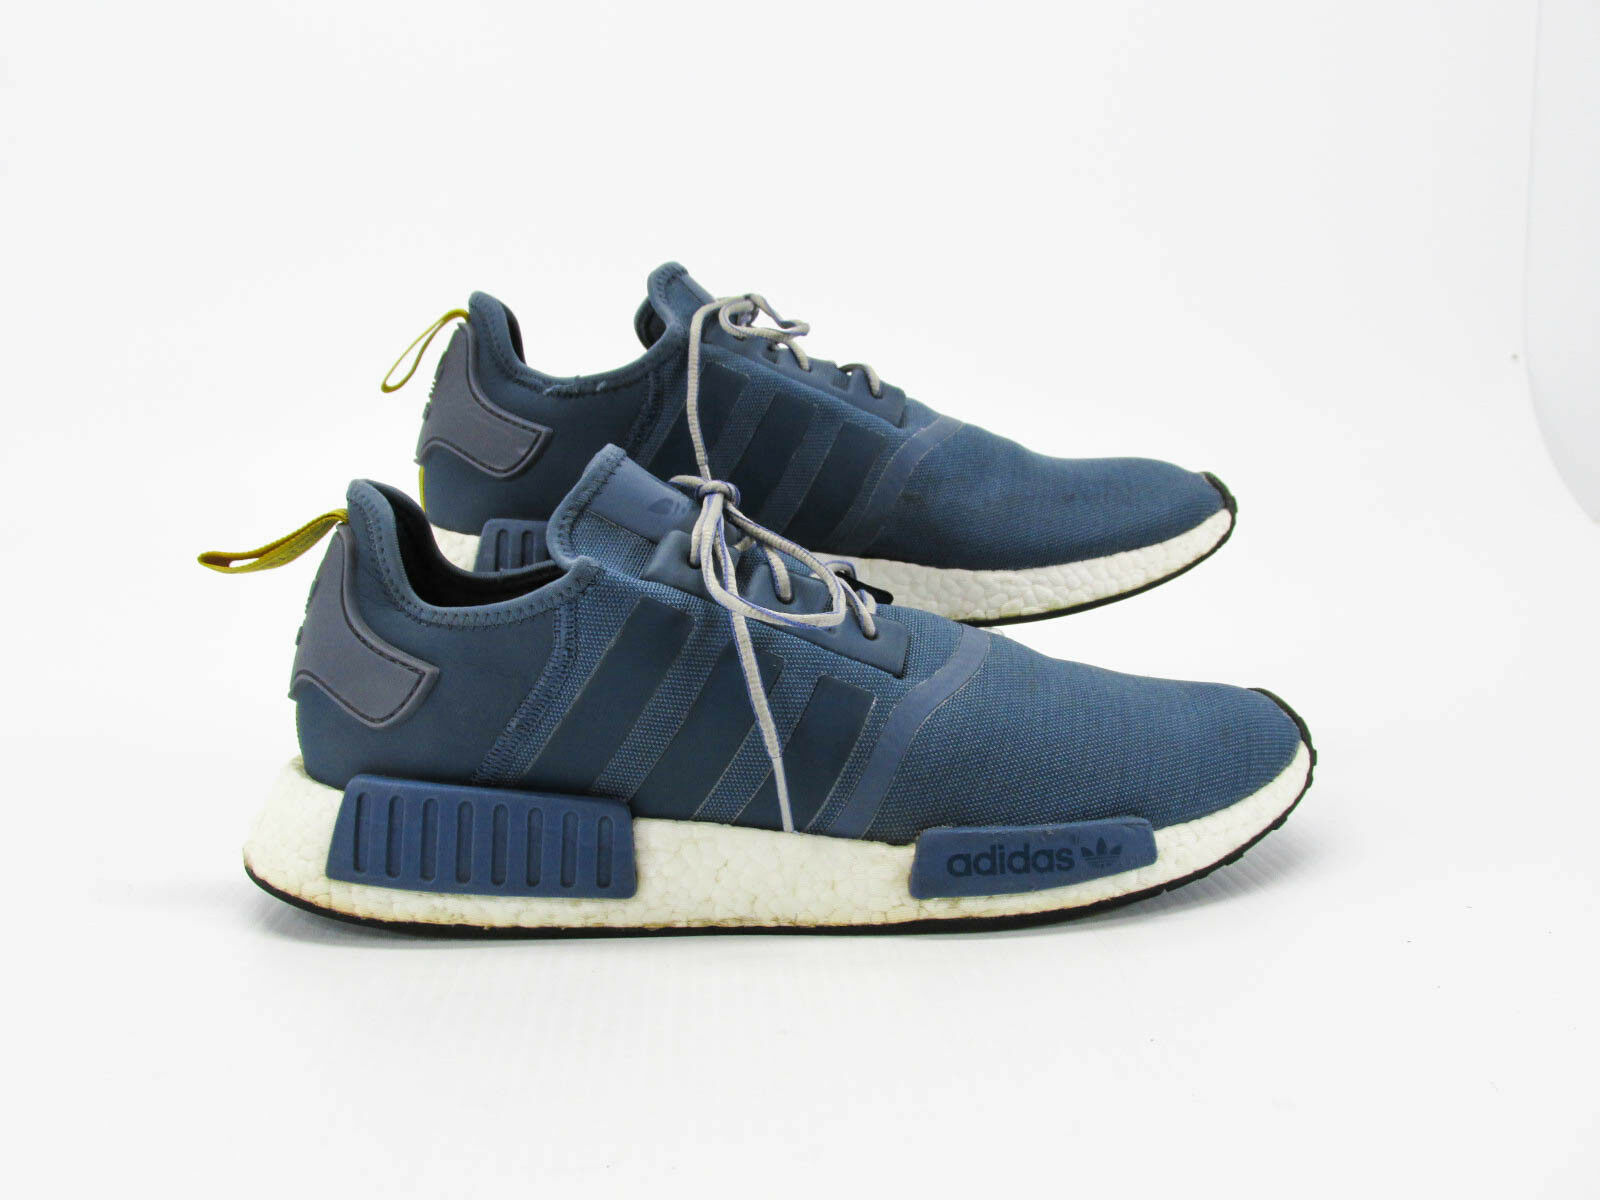 Adidas NMD R1 Boost Men bluee Athletic shoes Size 14.5M Pre Owned CQ